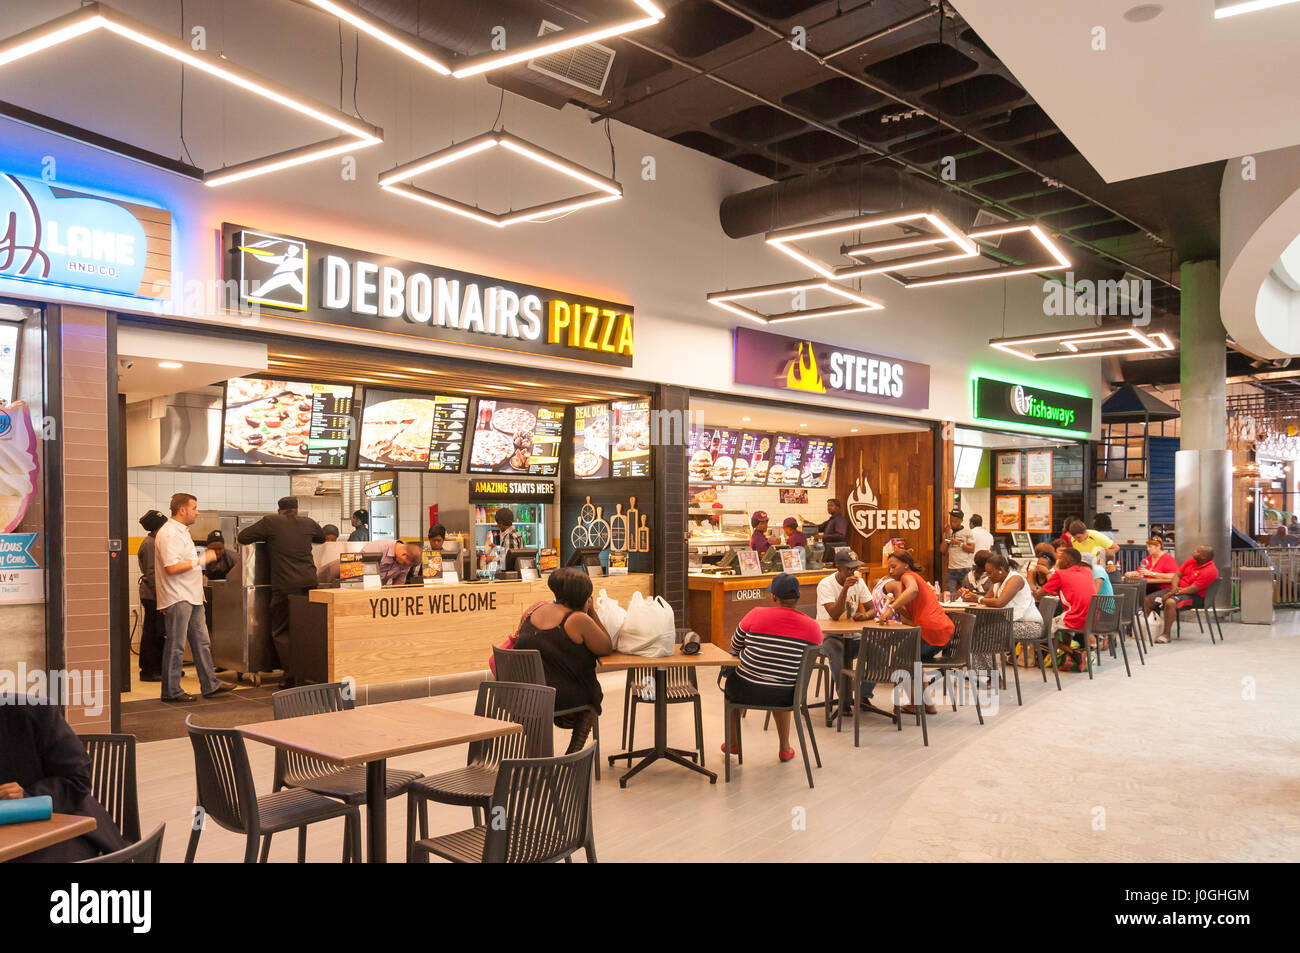 Food Court at Springs Mall Shopping Centre, Casseldale, Springs, East Rand, Gauteng Province, Republic of South - Stock Image